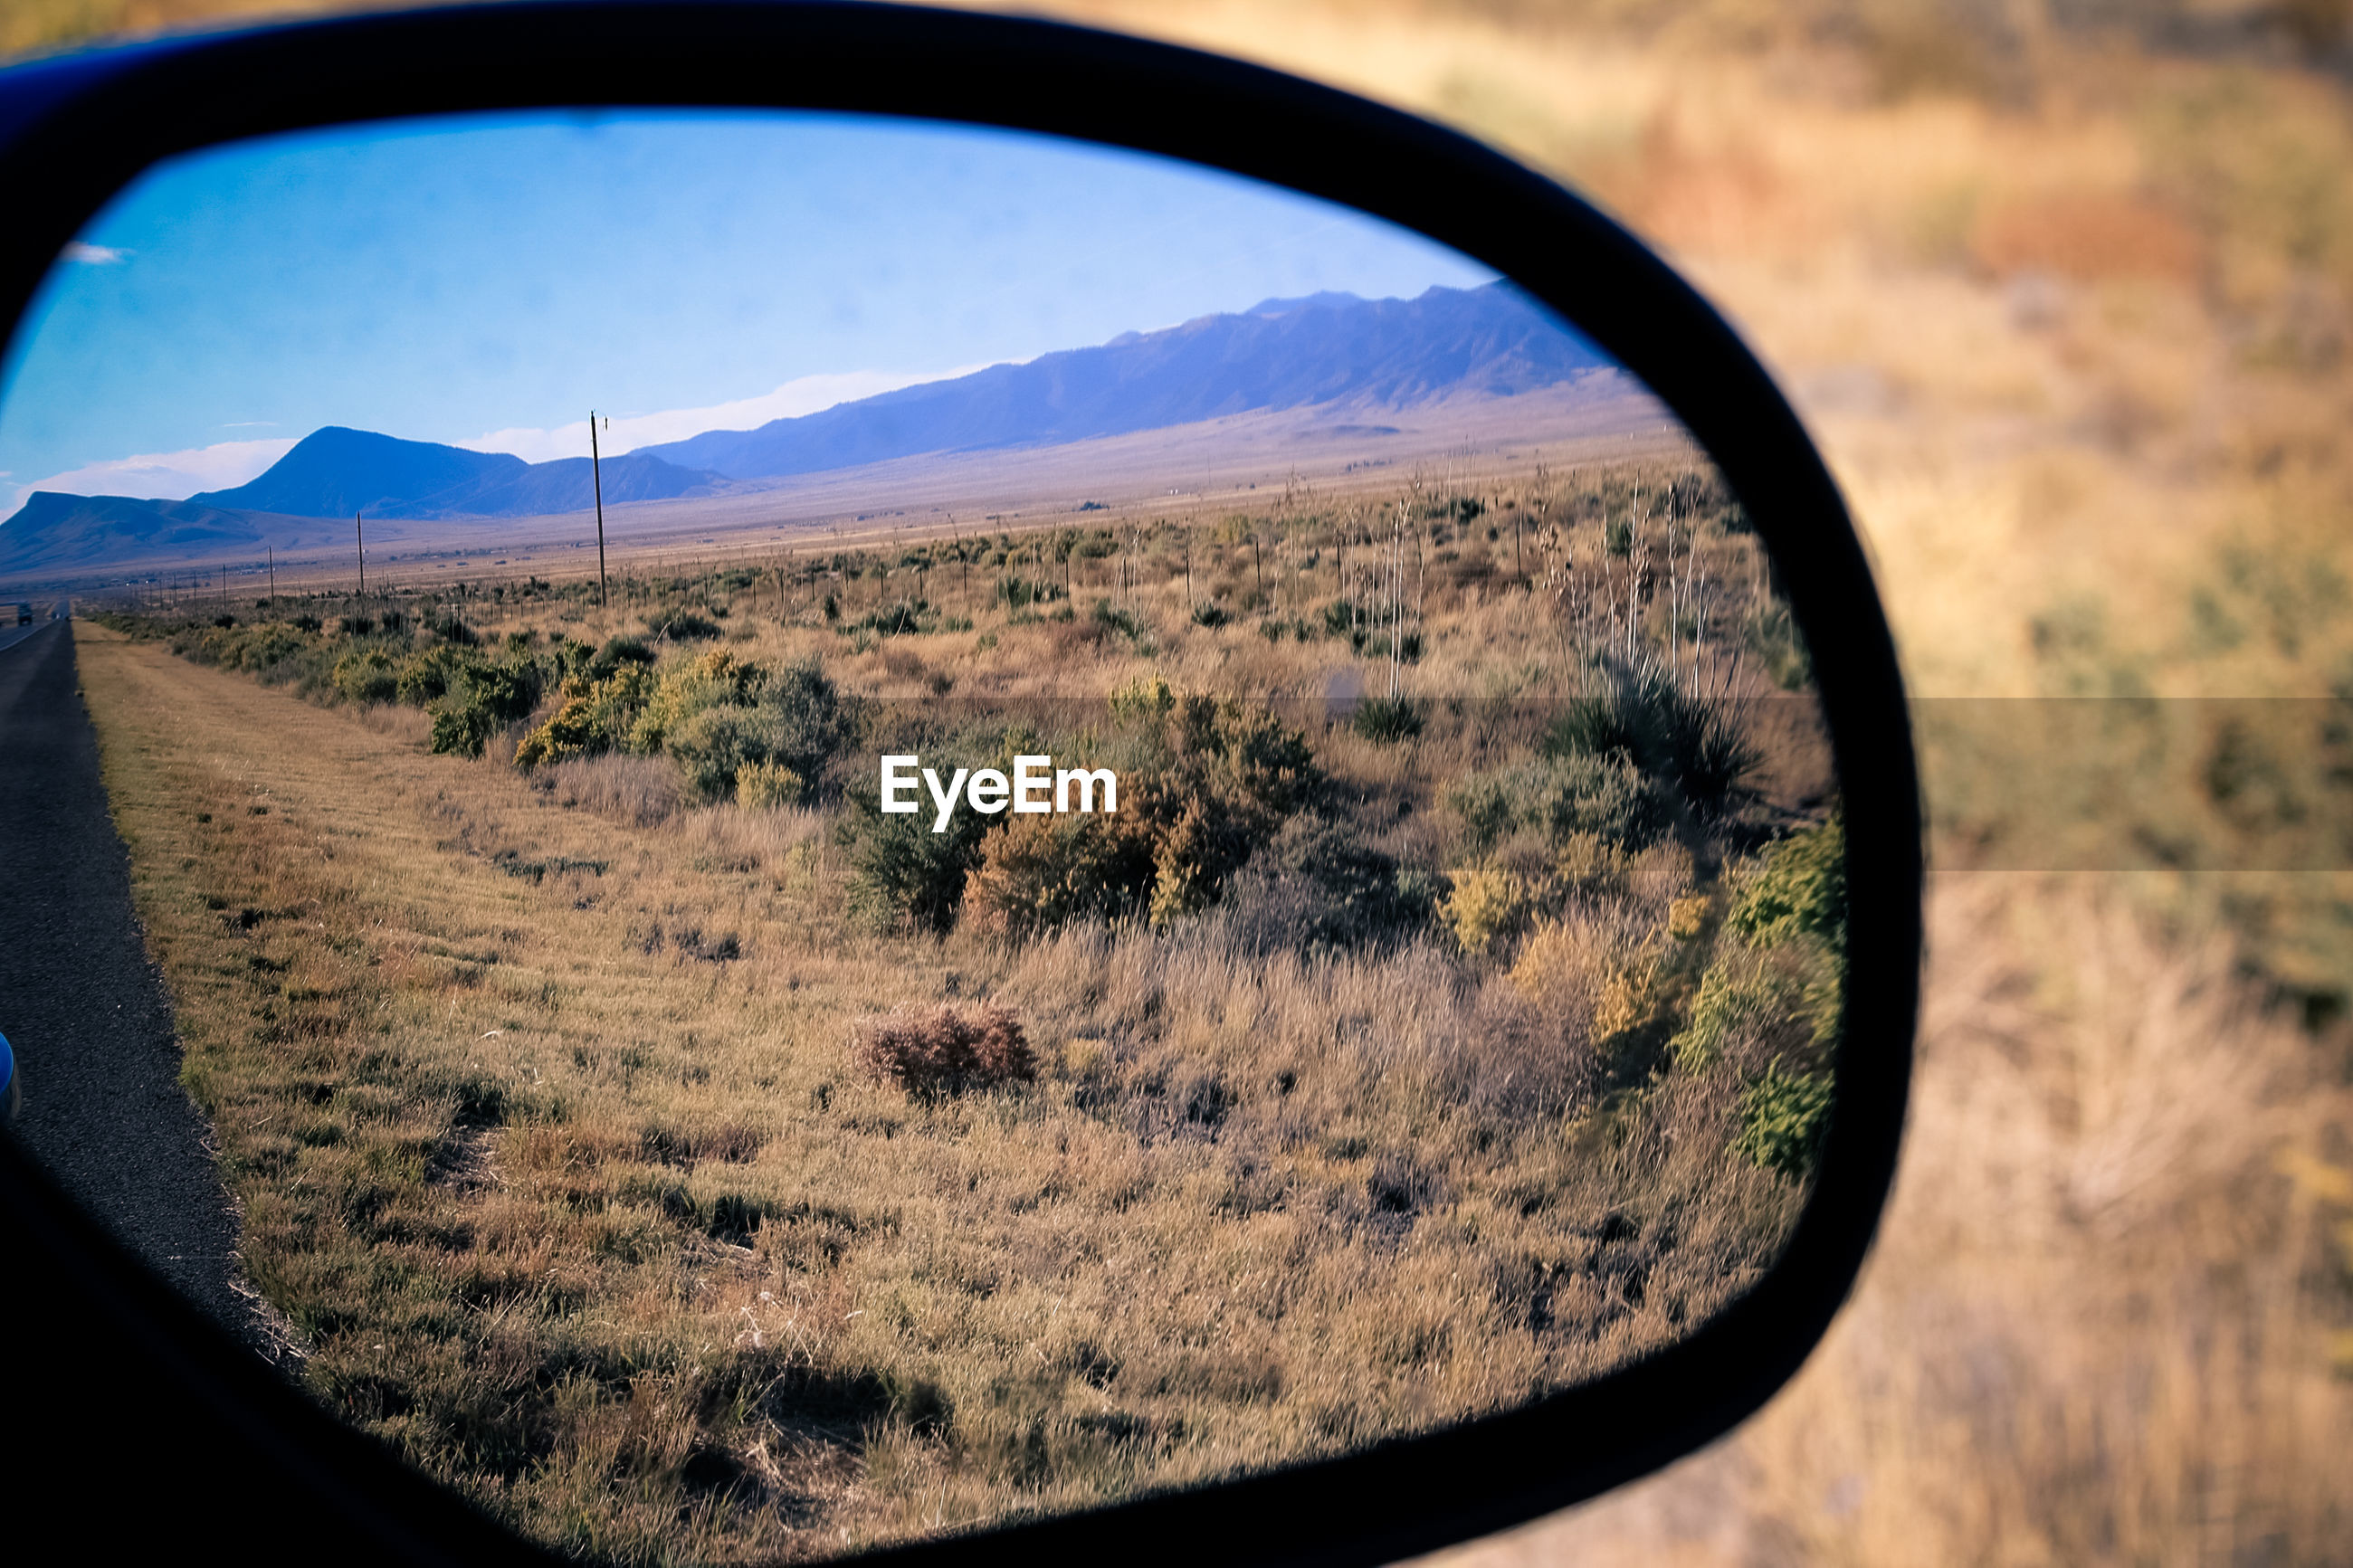 Reflection of landscape in side-view mirror